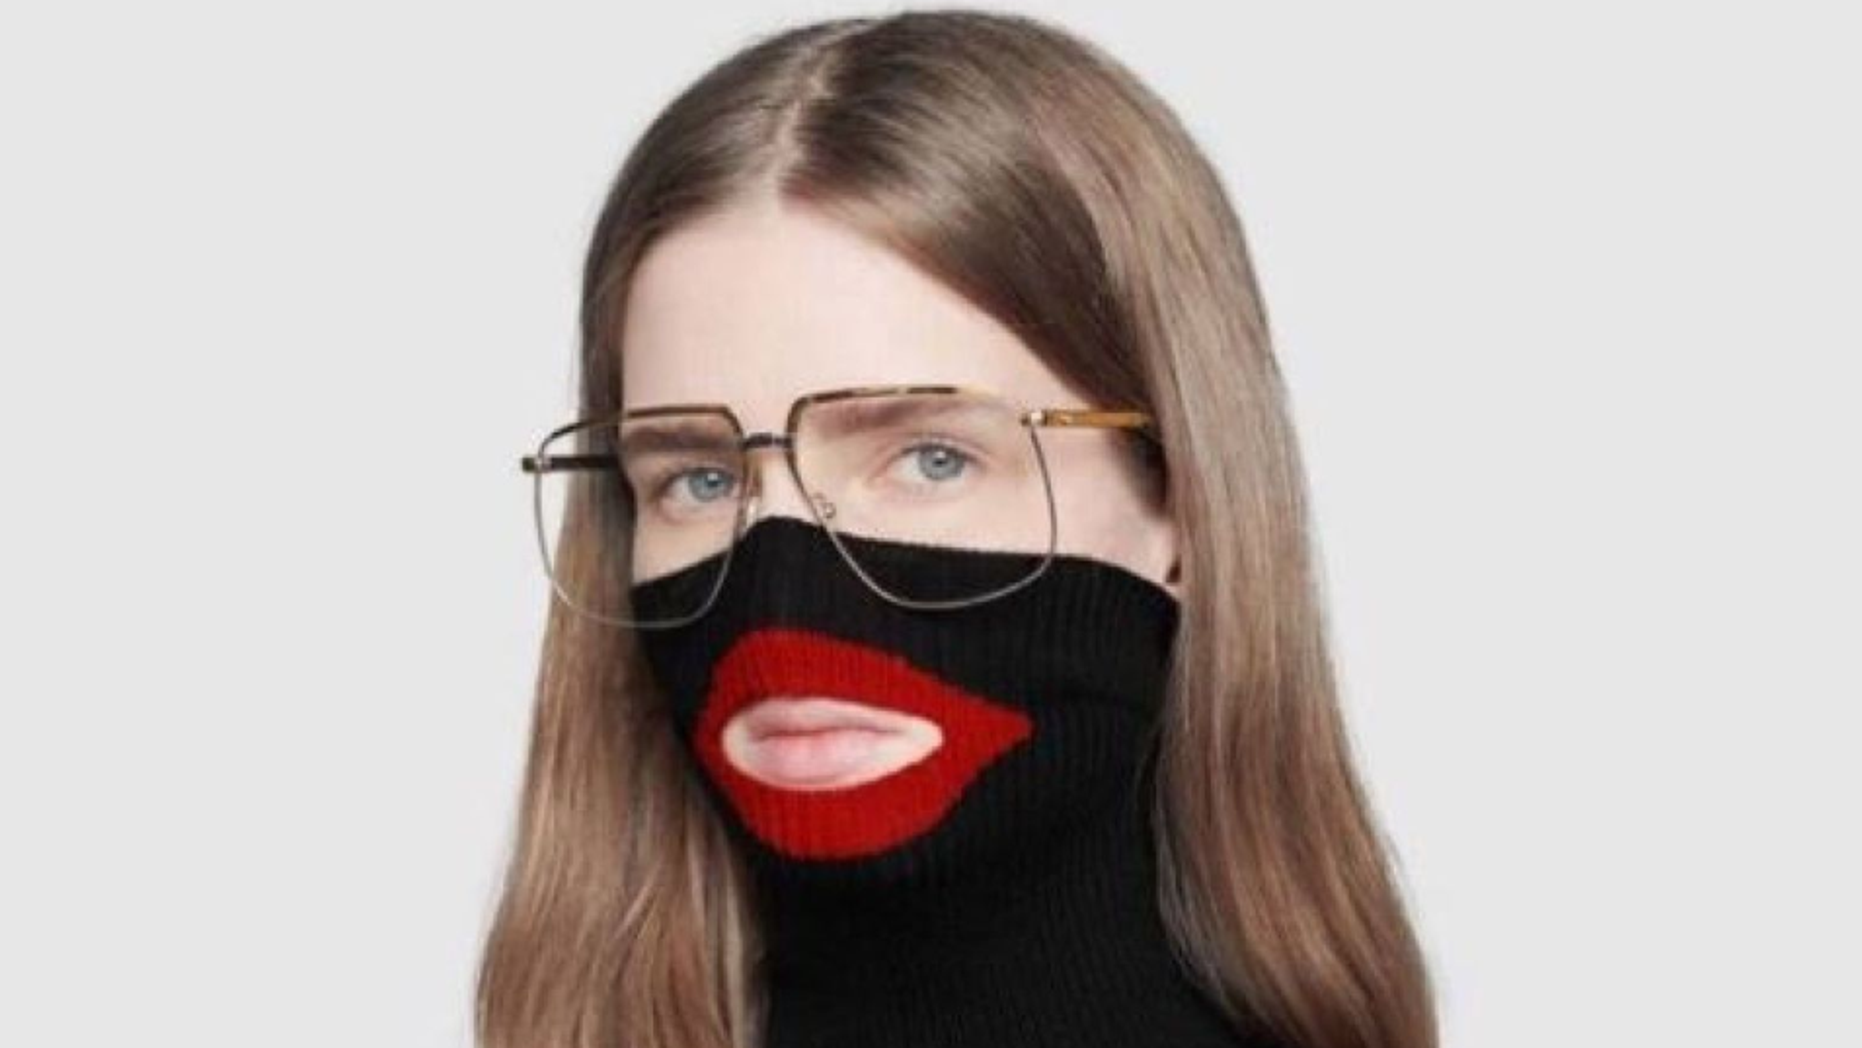 Gucci has apologized for its controversial sweater and said it had removed the item from its online and physical stores.